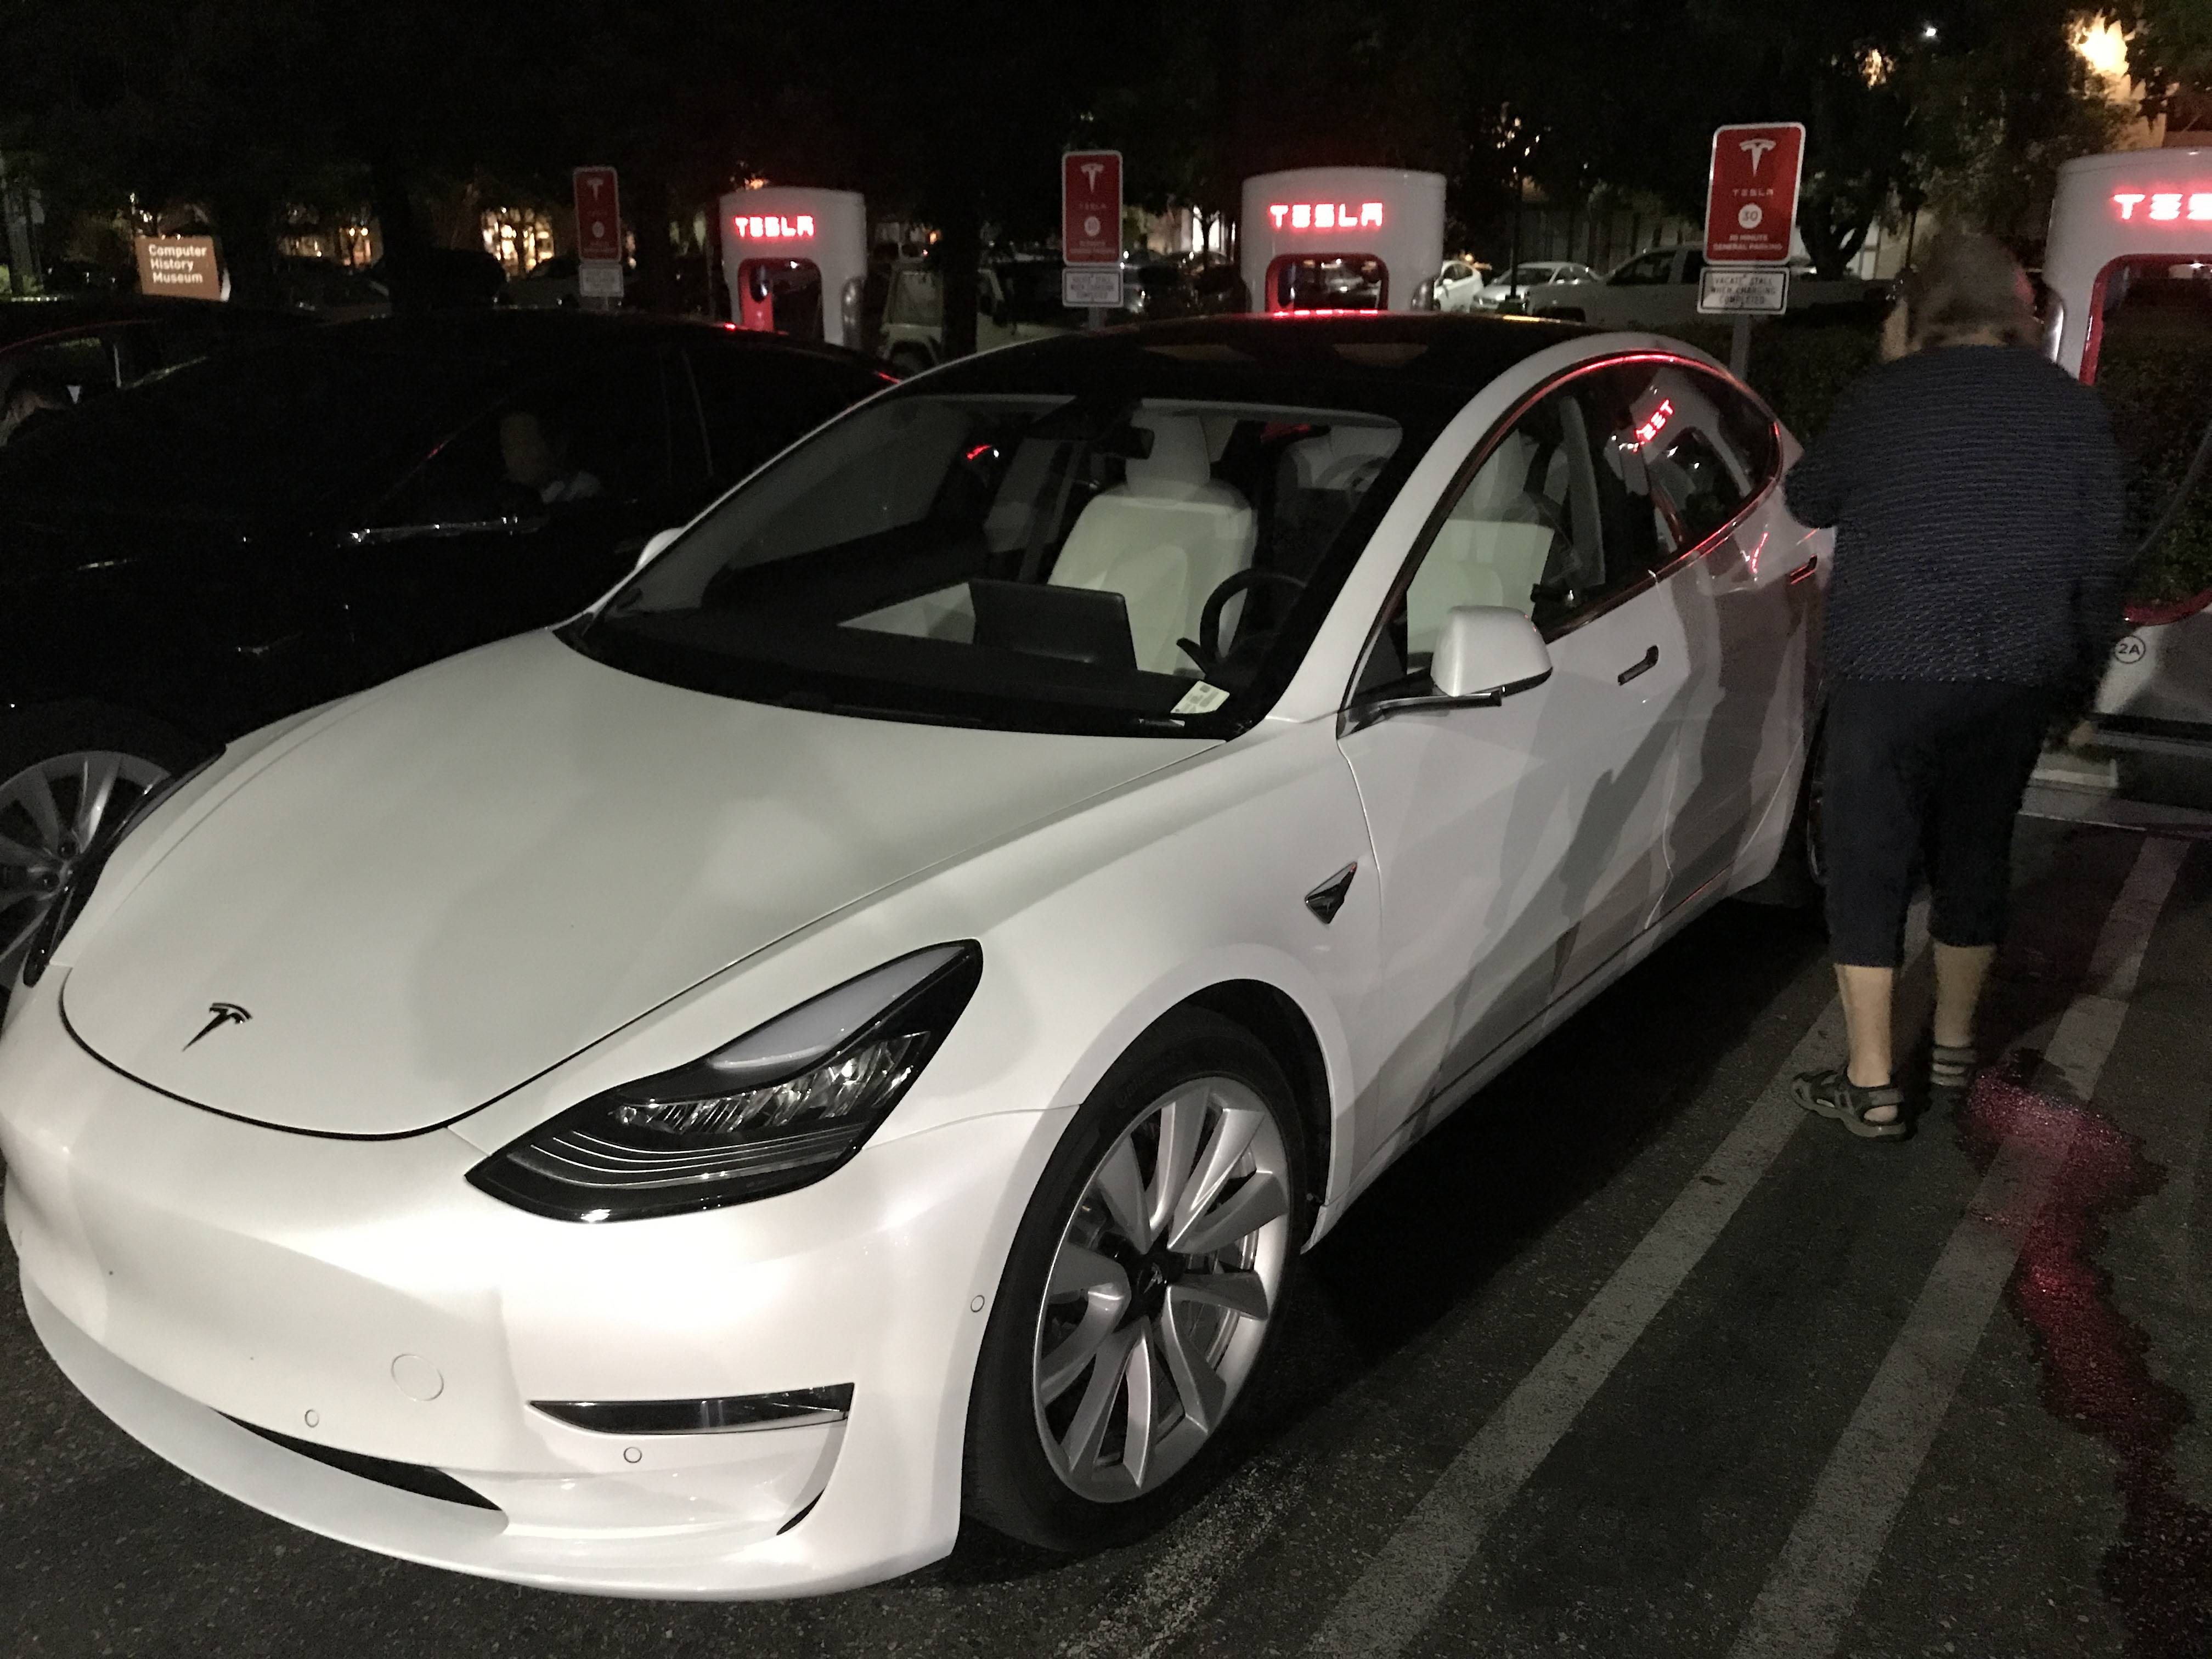 334 People View Top Pack 2 also Review as well Tesla Model S Tesla Motors Car Tesla Model X Tesla 116689 furthermore Bmw I8 Interior Concept Photo 411790 additionally People Waiting For Tesla Model 3 In. on tesla model 3 front view